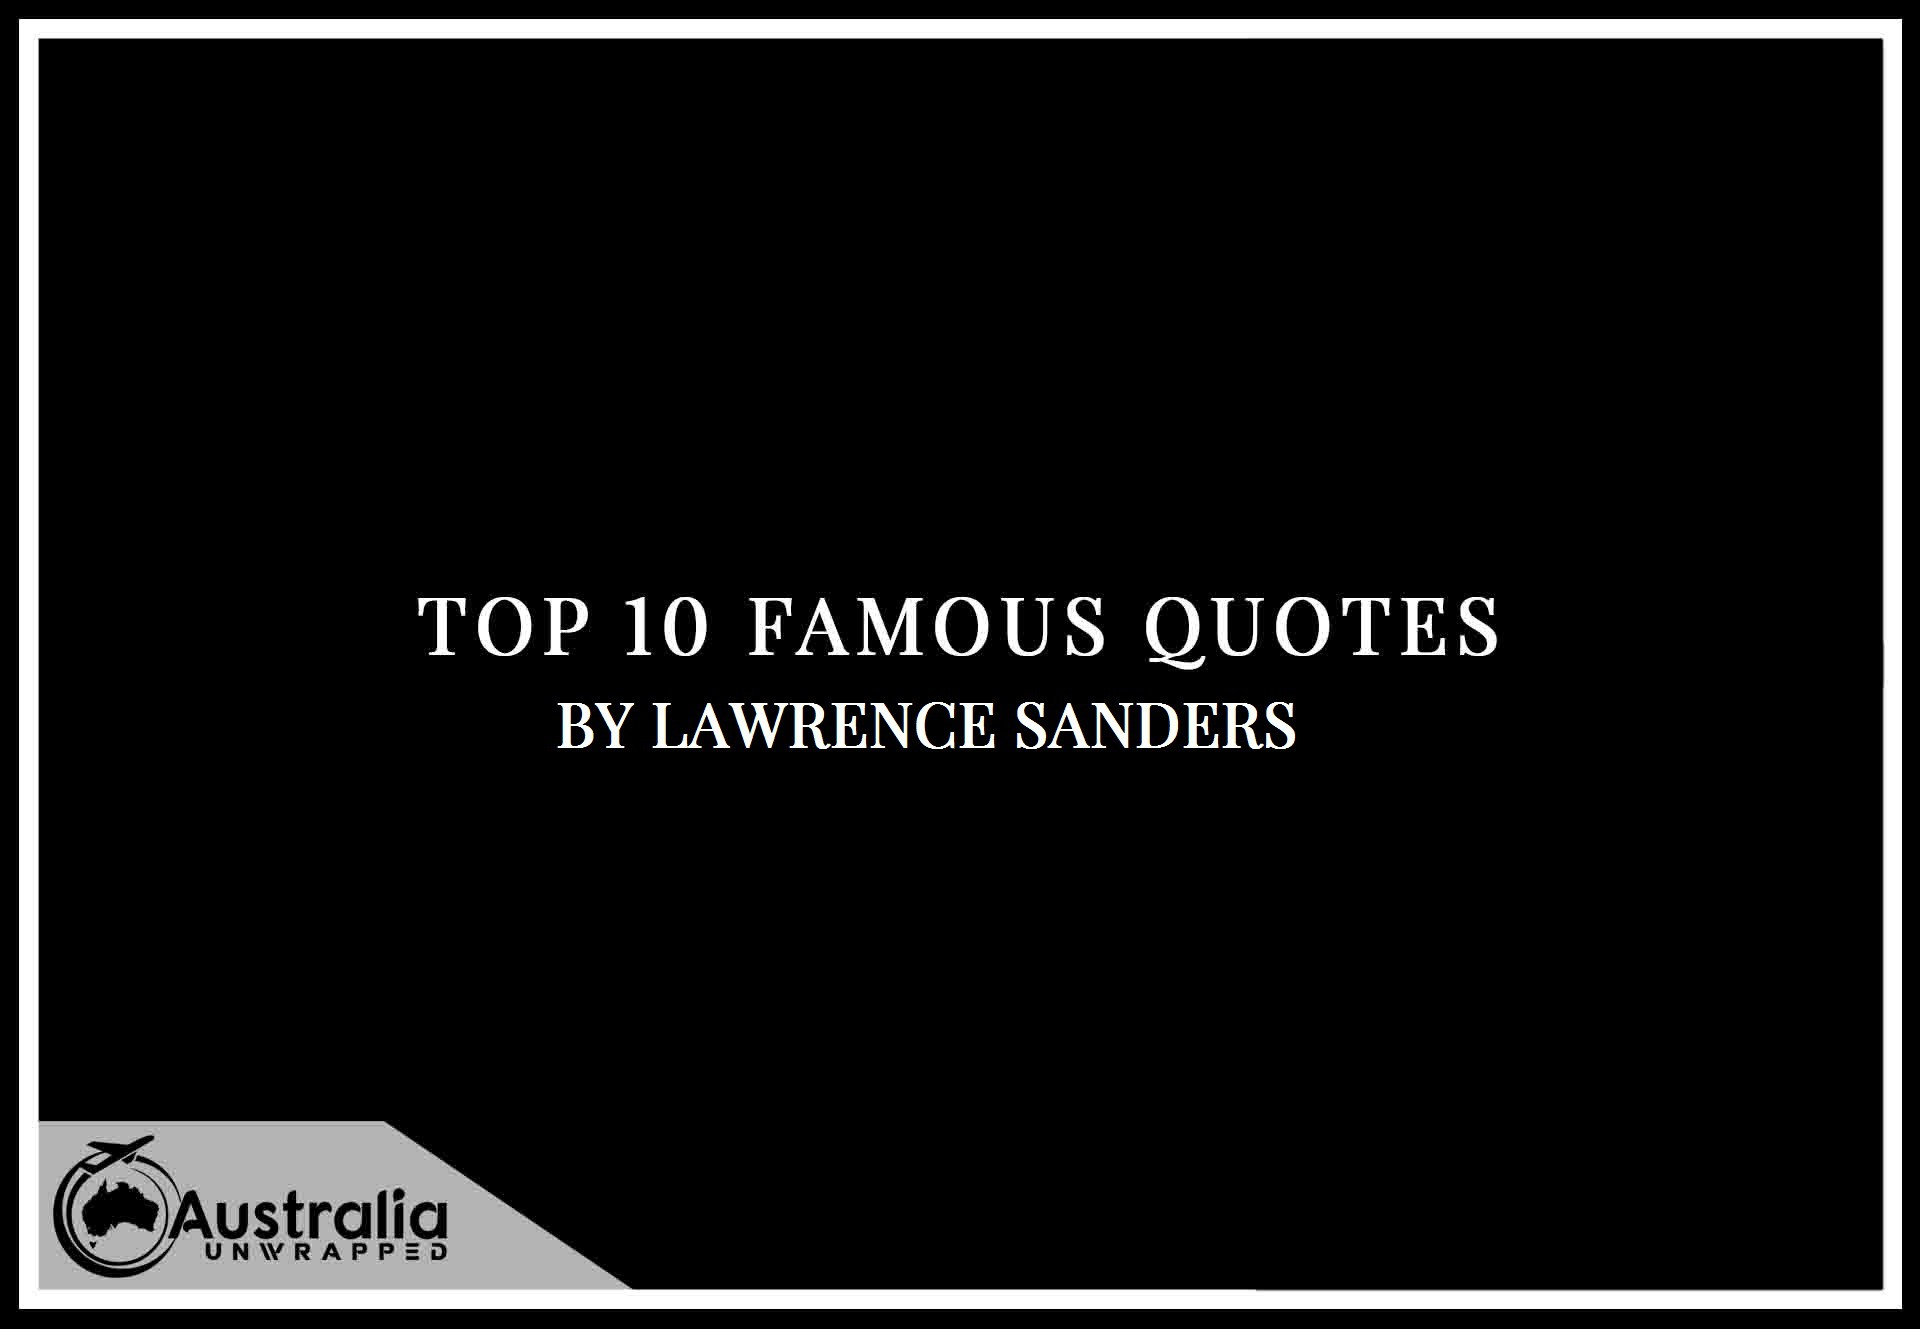 Lawrence Sanders's Top 10 Popular and Famous Quotes